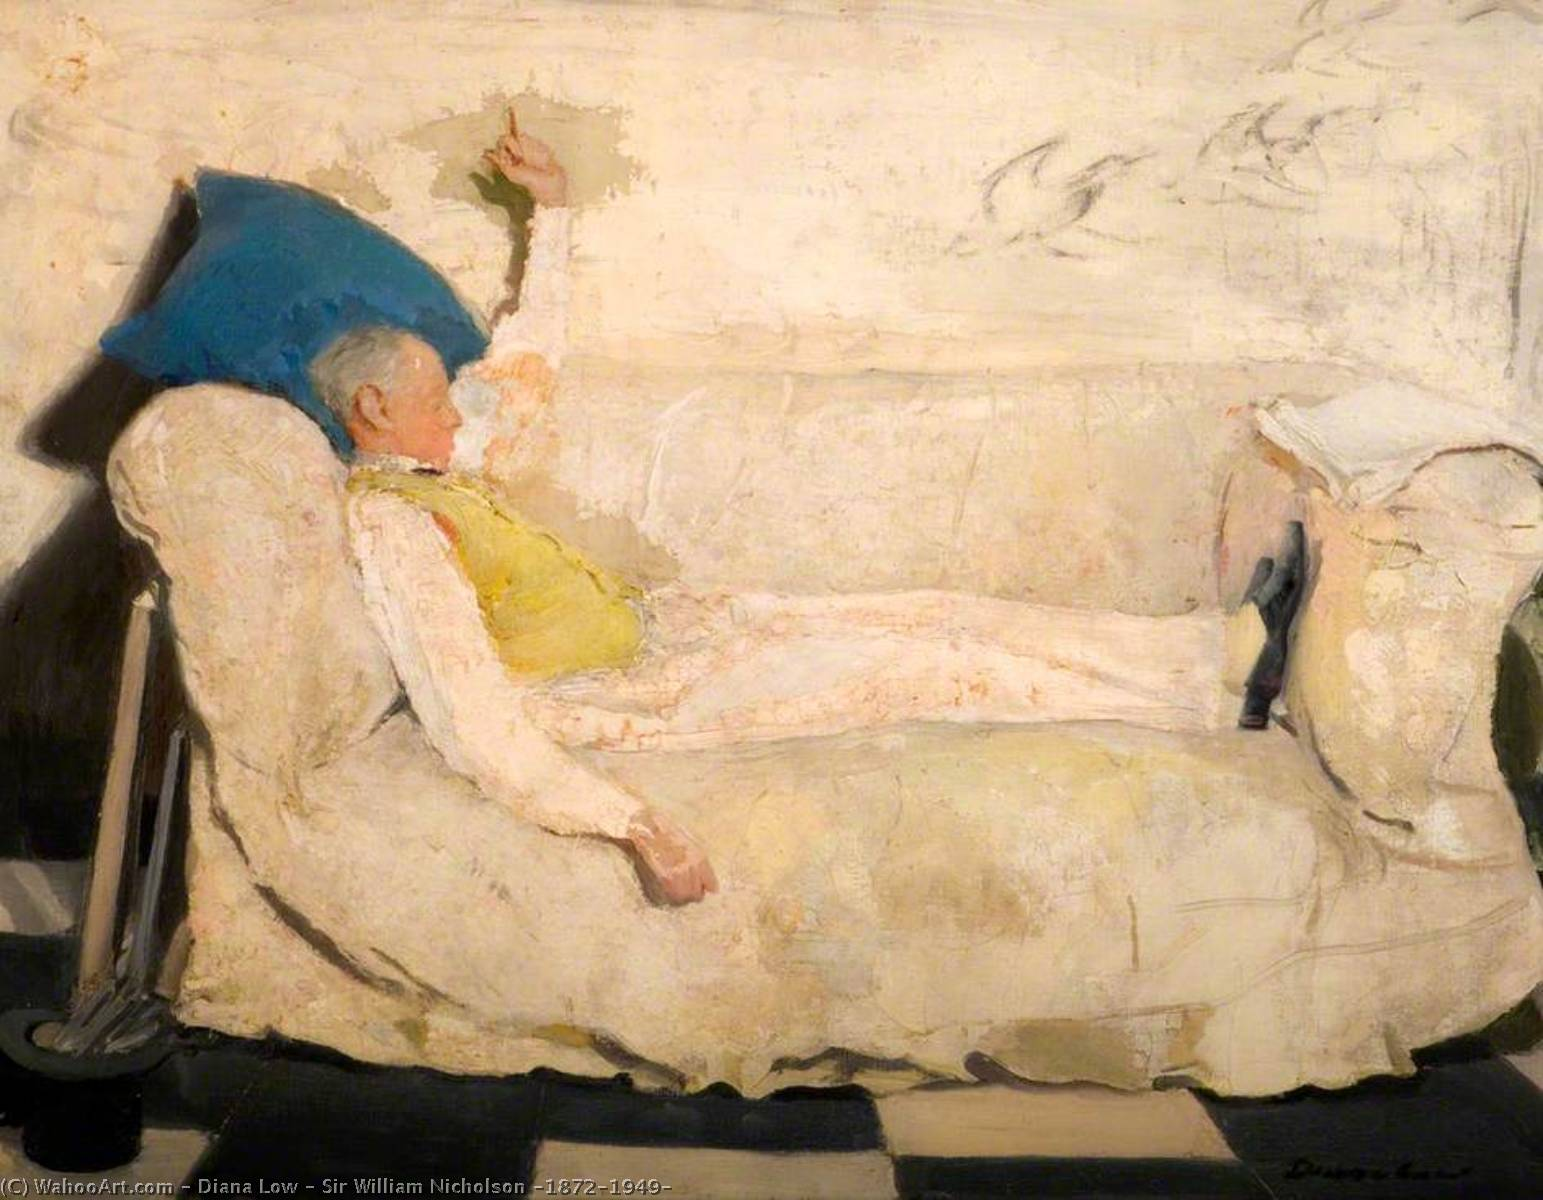 famous painting sir william nicholson ( 1872–1949 ) of Diana Low